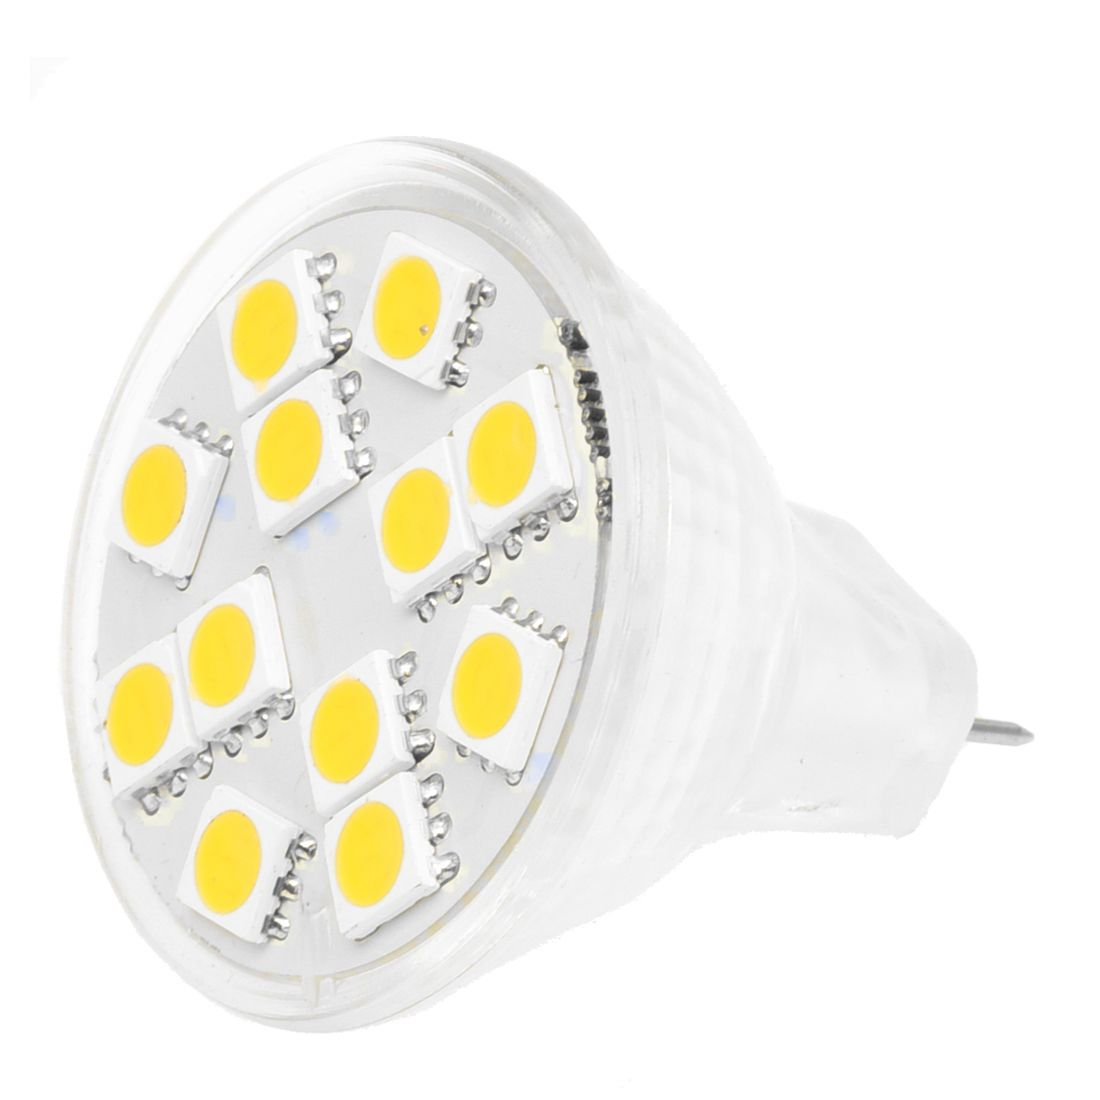 2W MR11 GU4 120-144LM LED Bulb 12 5050 SMD Warm White Lamp